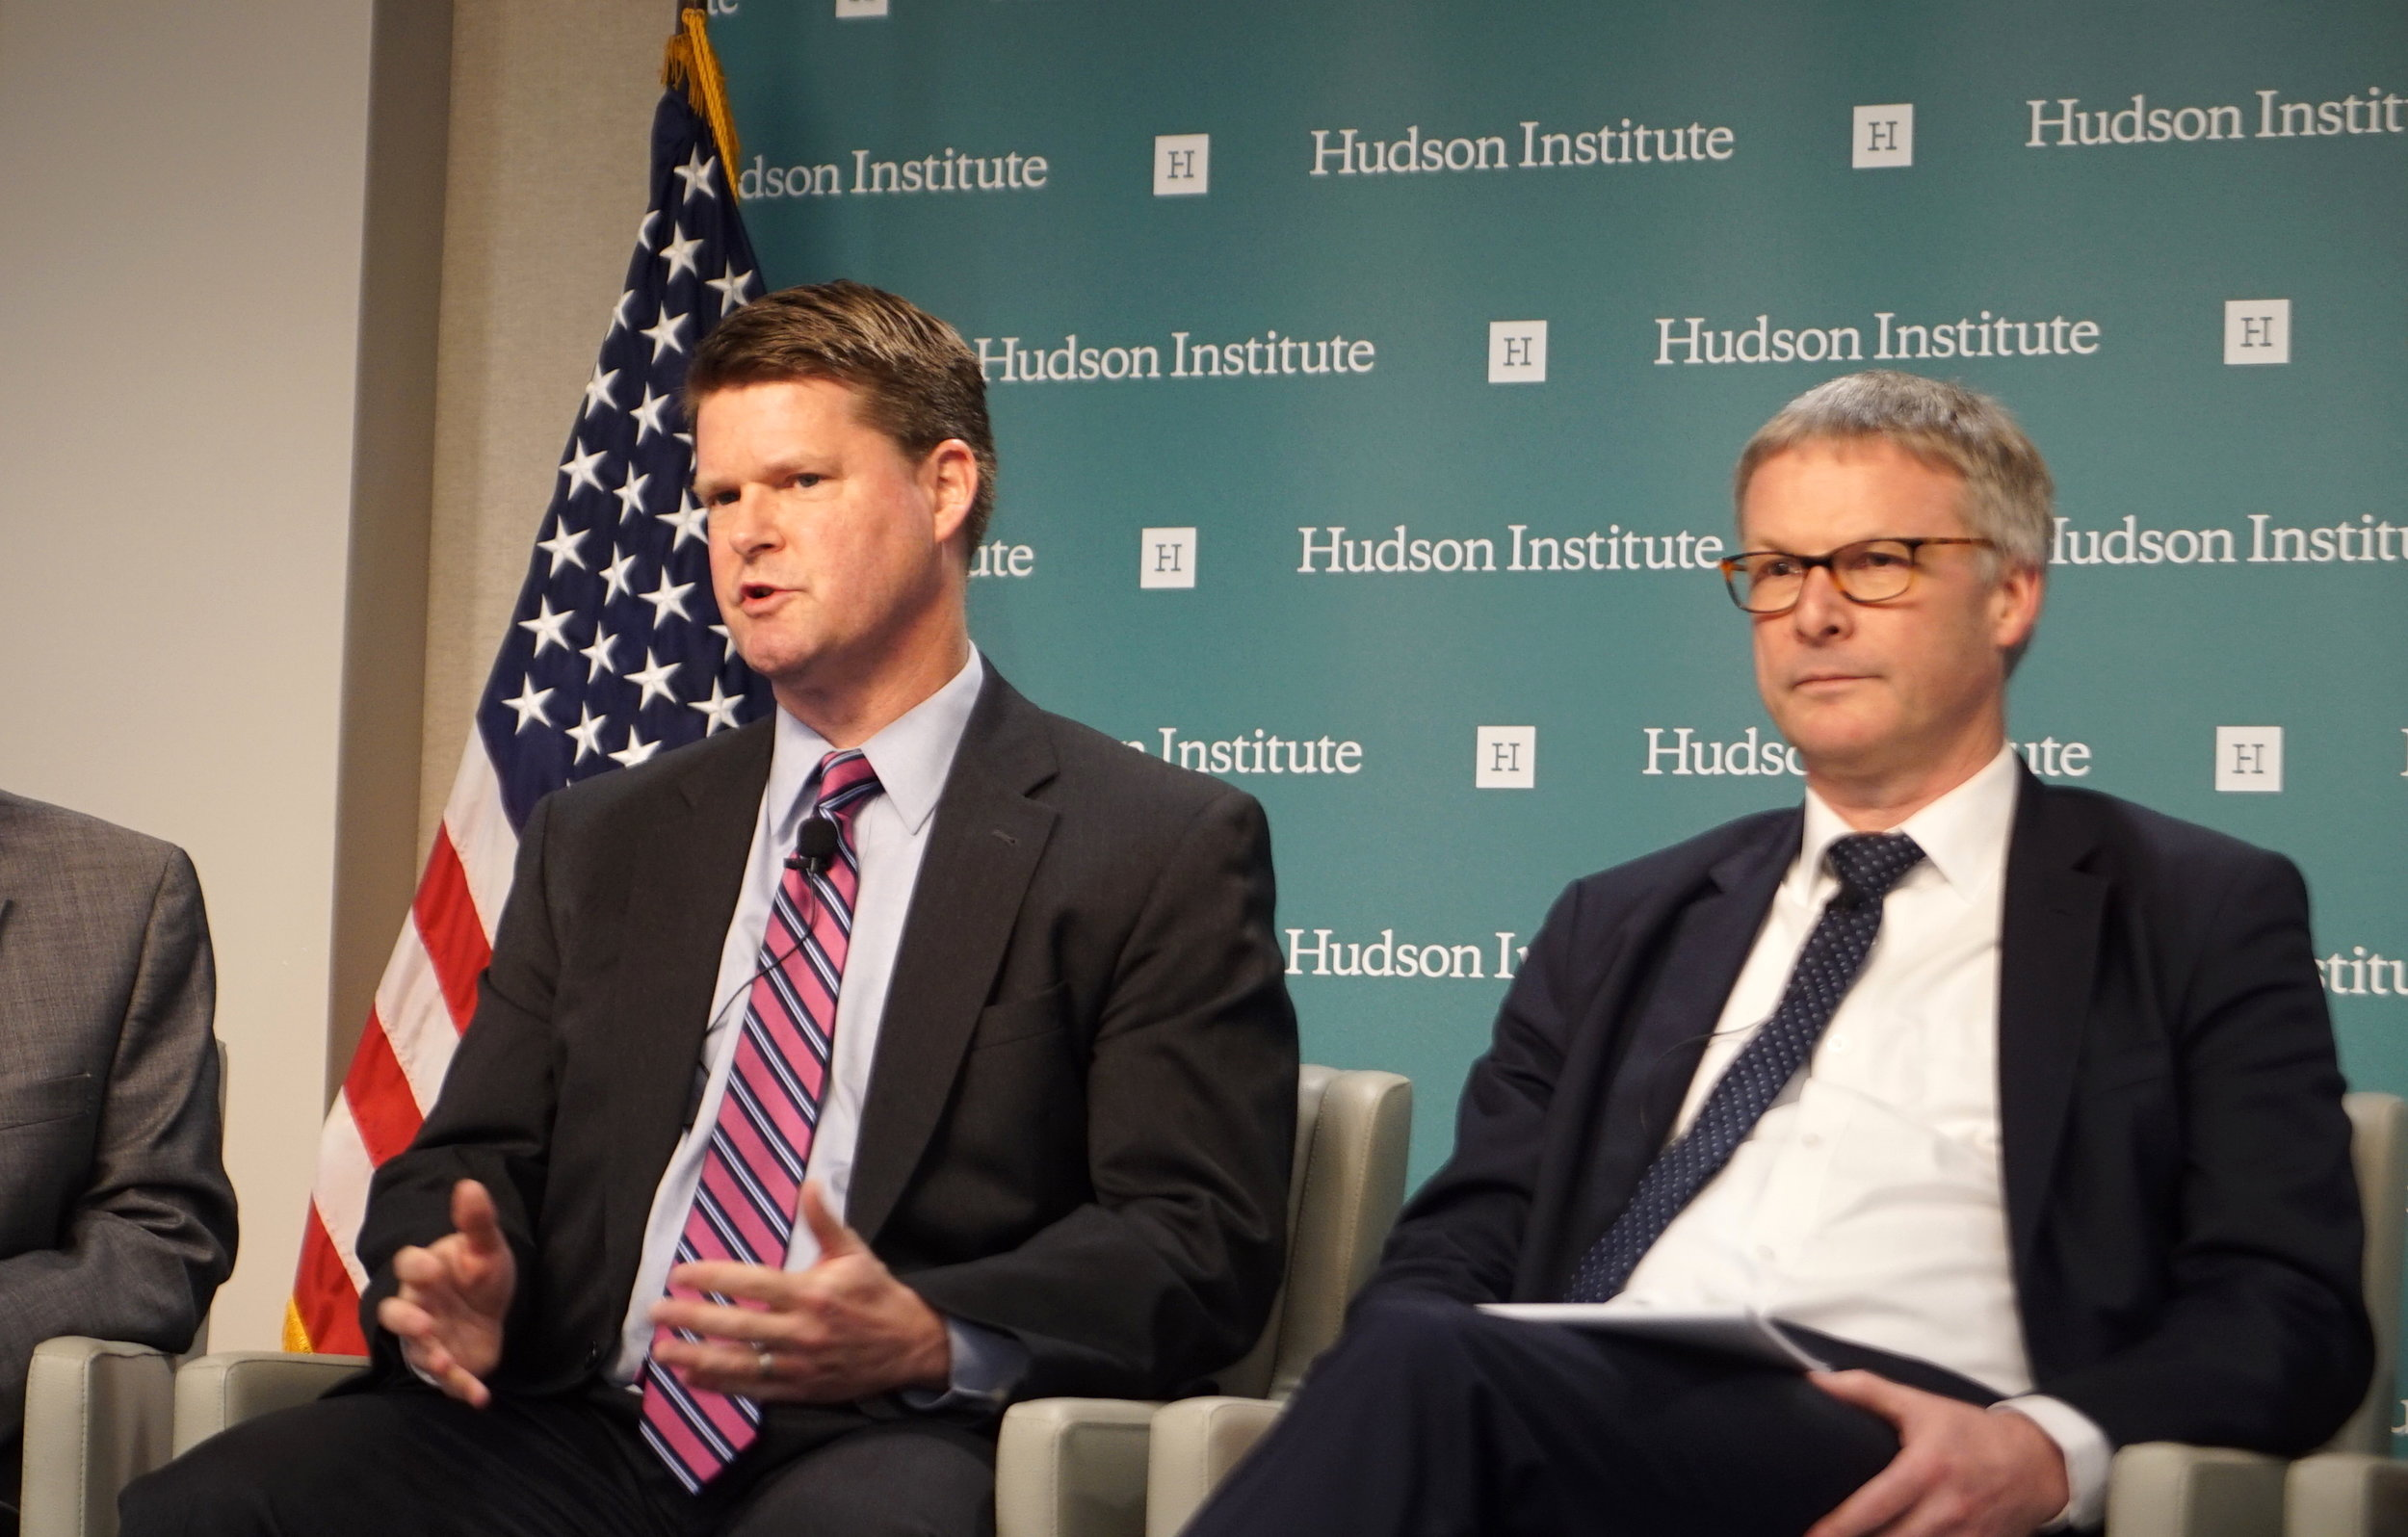 (L-R) Randall Schriver, Assistant Secretary of Defense for Indo-Pacific Security Affairs and Jeppe Tranholm-Mikkelsen, Secretary-General of the Council of the European Union at the Hudson Institute in Washington on April 16. (Jennifer Zeng/The Epoch Times)